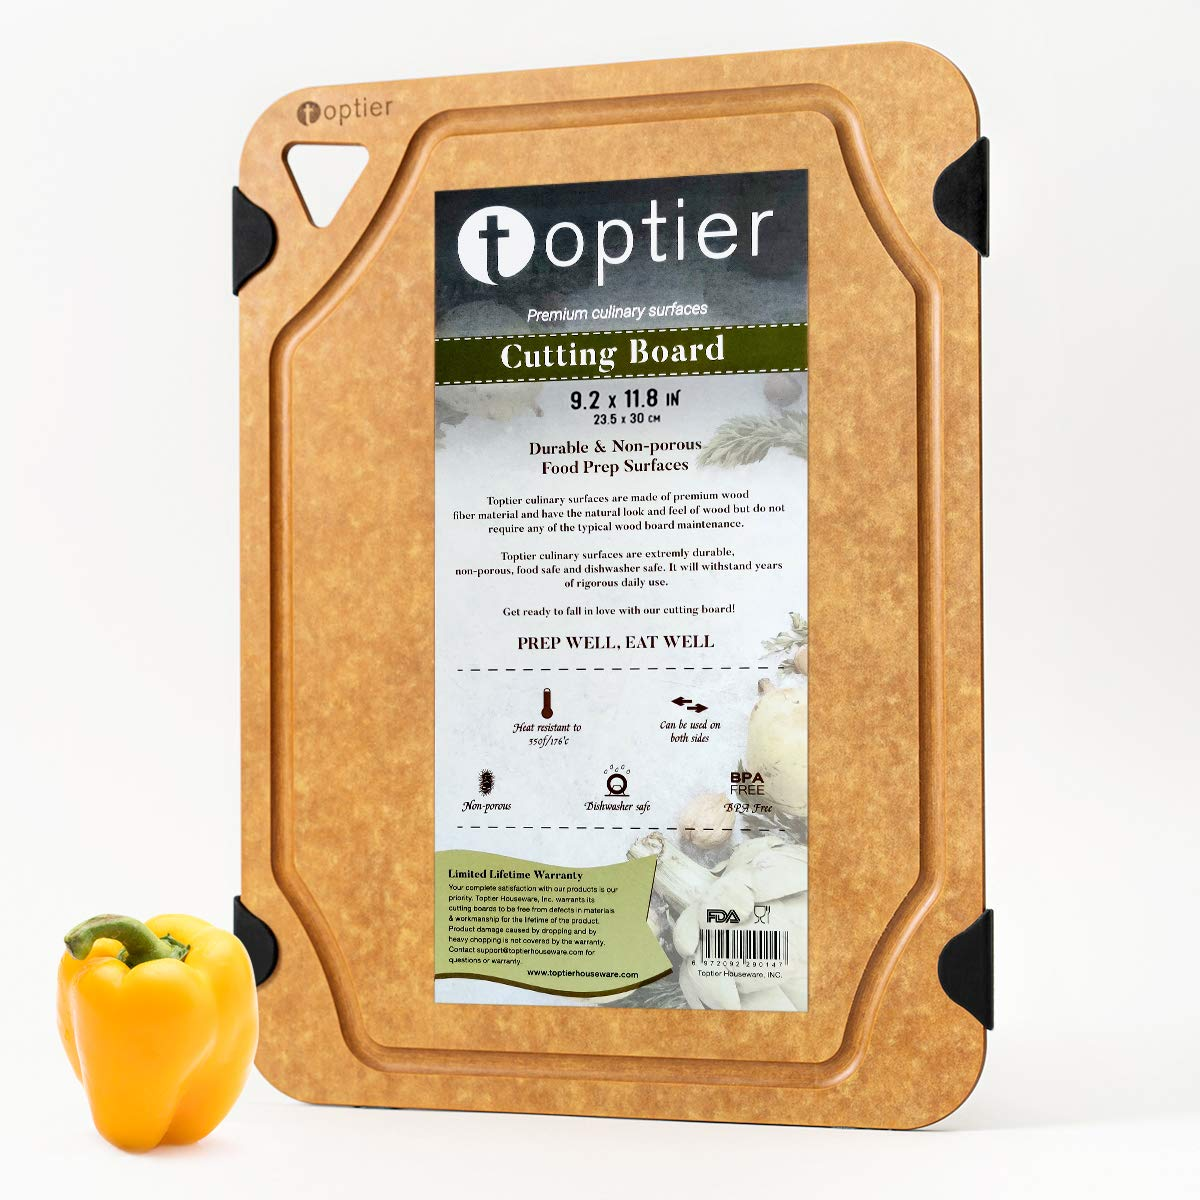 Cutting Board for Kitchen Dishwasher Safe, TOPTIER Wood Fiber Cutting Board, Eco-Friendly, Non-Slip, Juice Grooves, Non-Porous, BPA Free, Small Cutting Board, 11.5 x 9.25-inch, Natural Slate